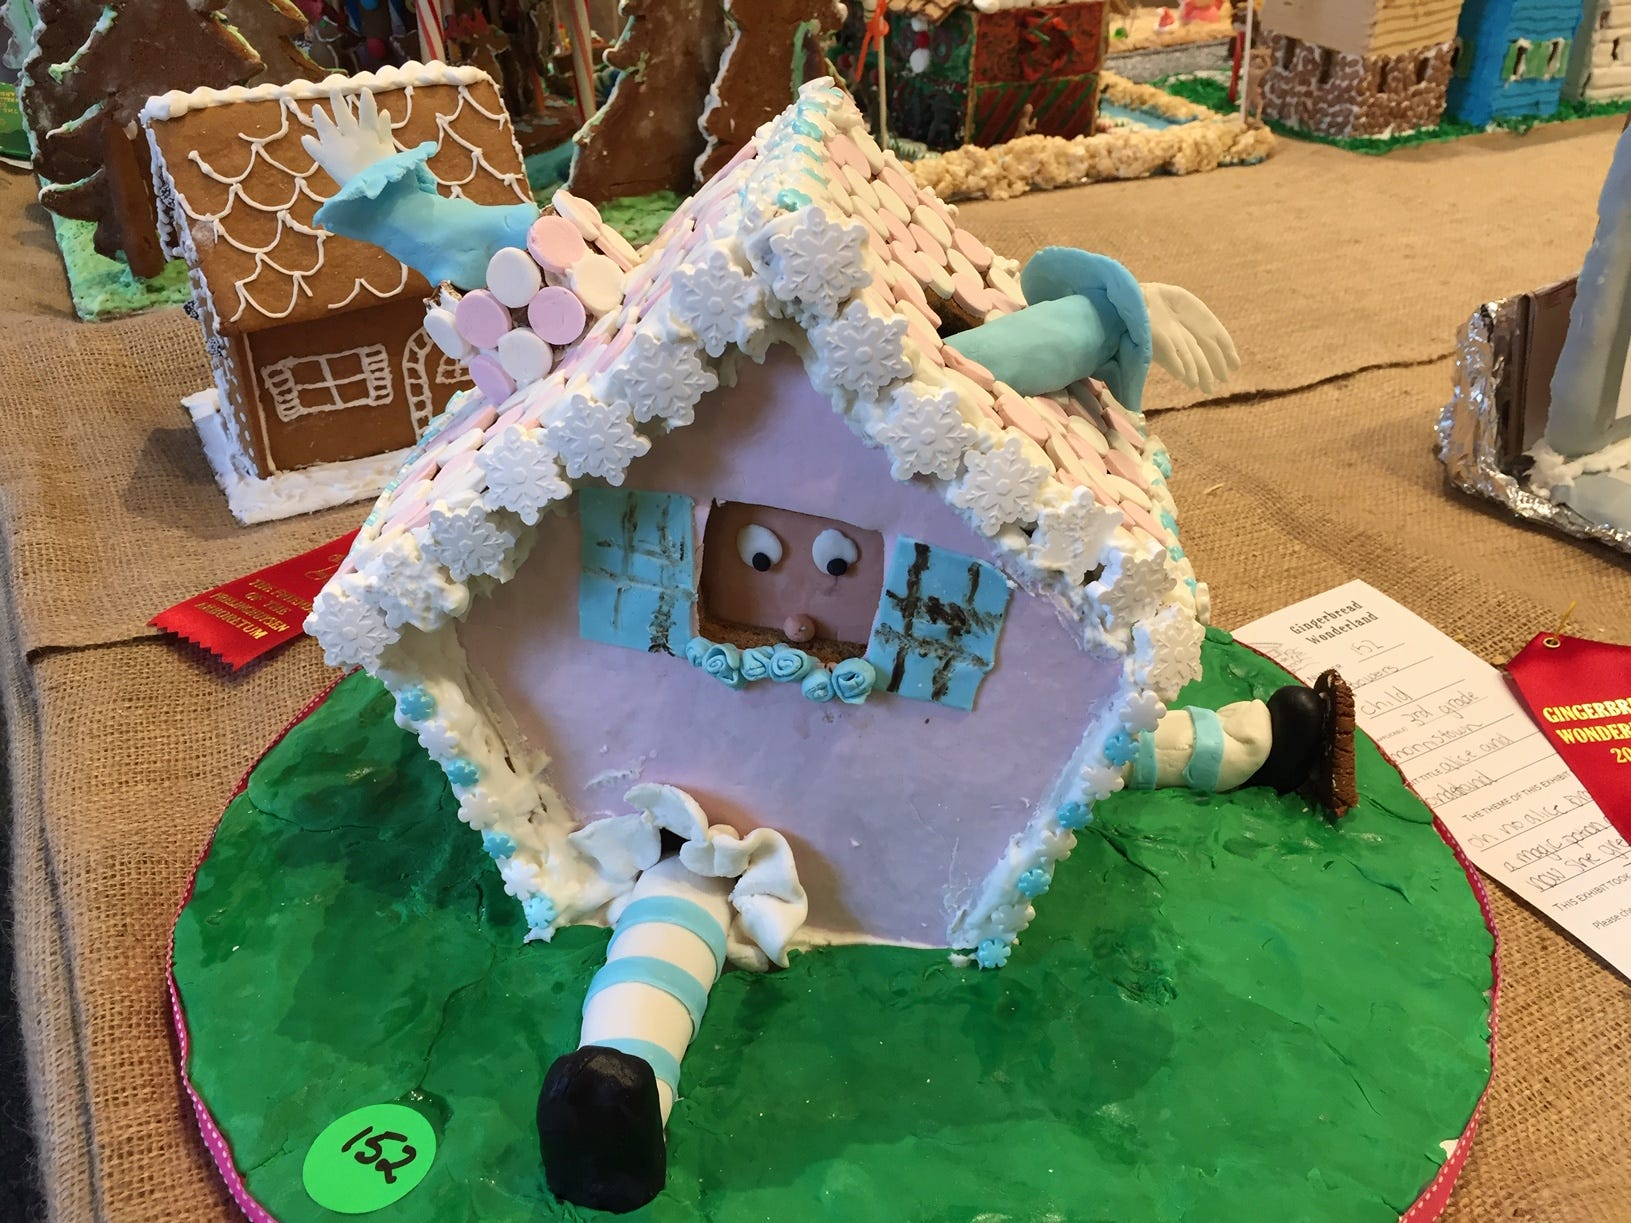 """Alice in Wonderland"" by third grader Natalie Bowers of Morristown, at the 2018 Gingerbread Wonderland at the Frelinghuysen Arboretum.  Child category."